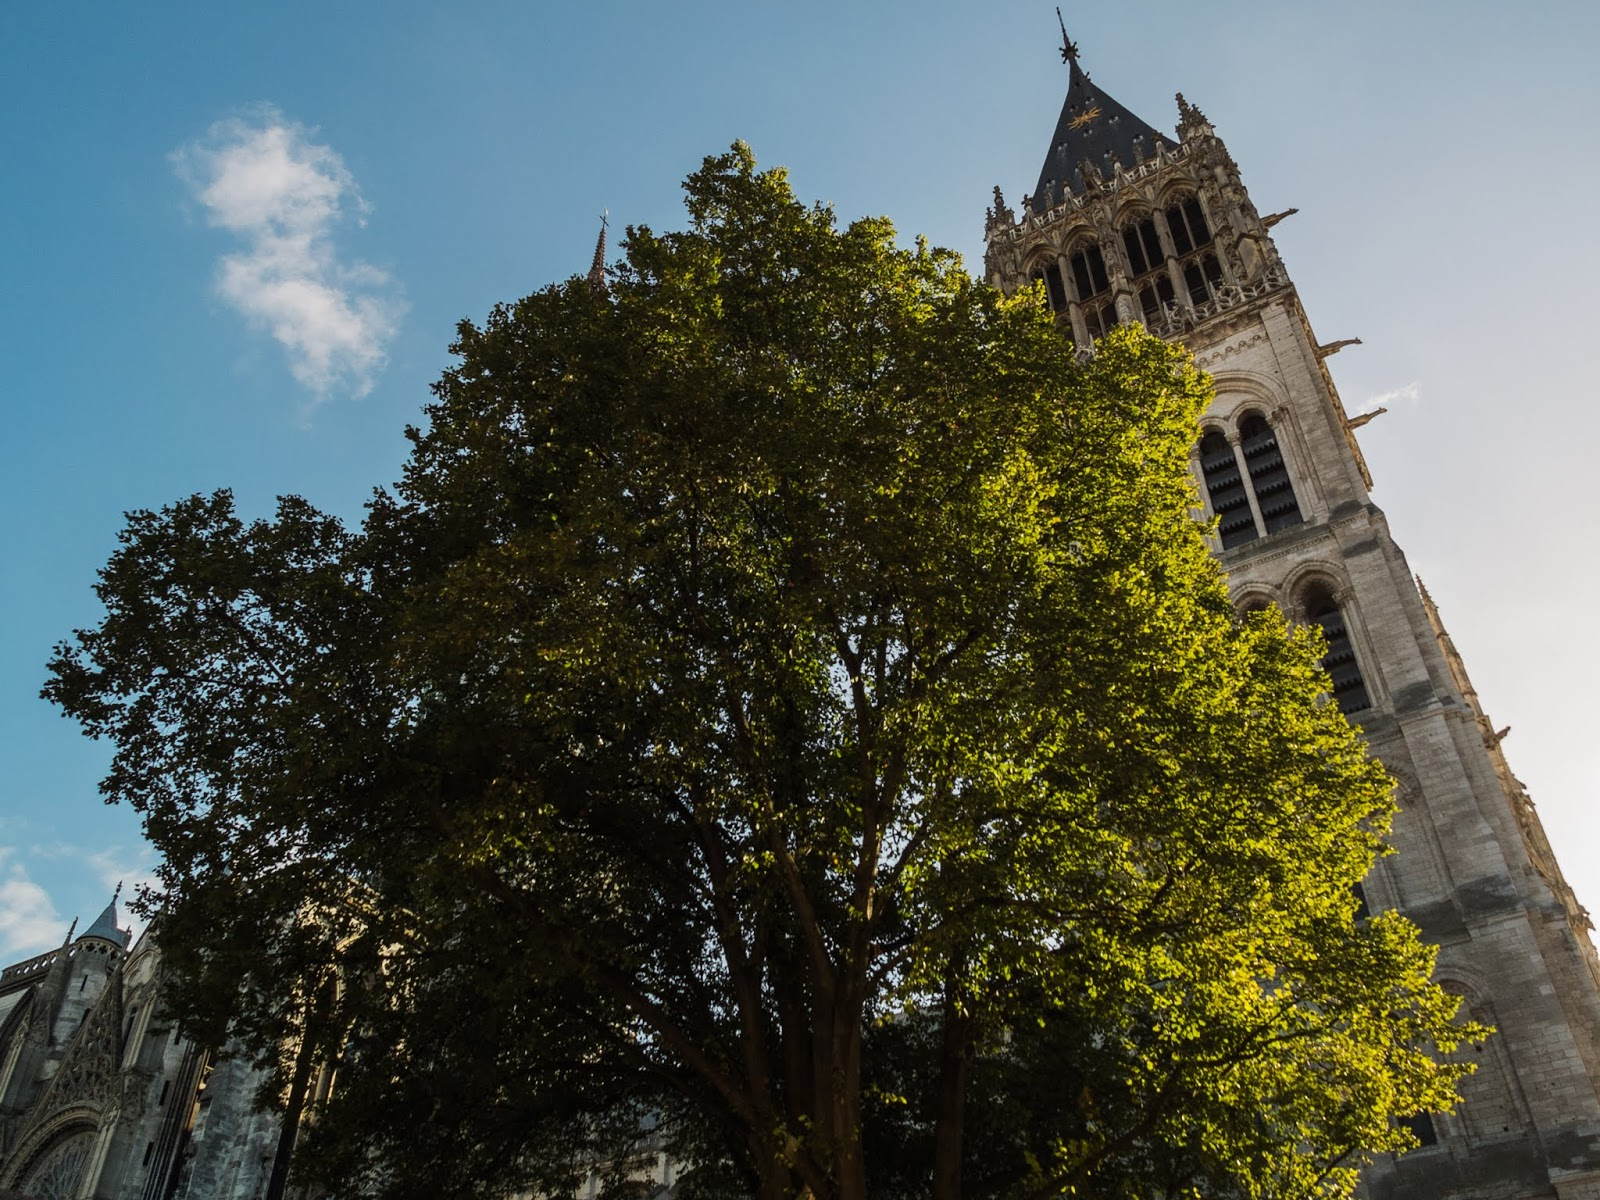 Looking up at a mature deciduous tree  glowing in sunlight outside the Notre Damme de Rouen, Northern France.